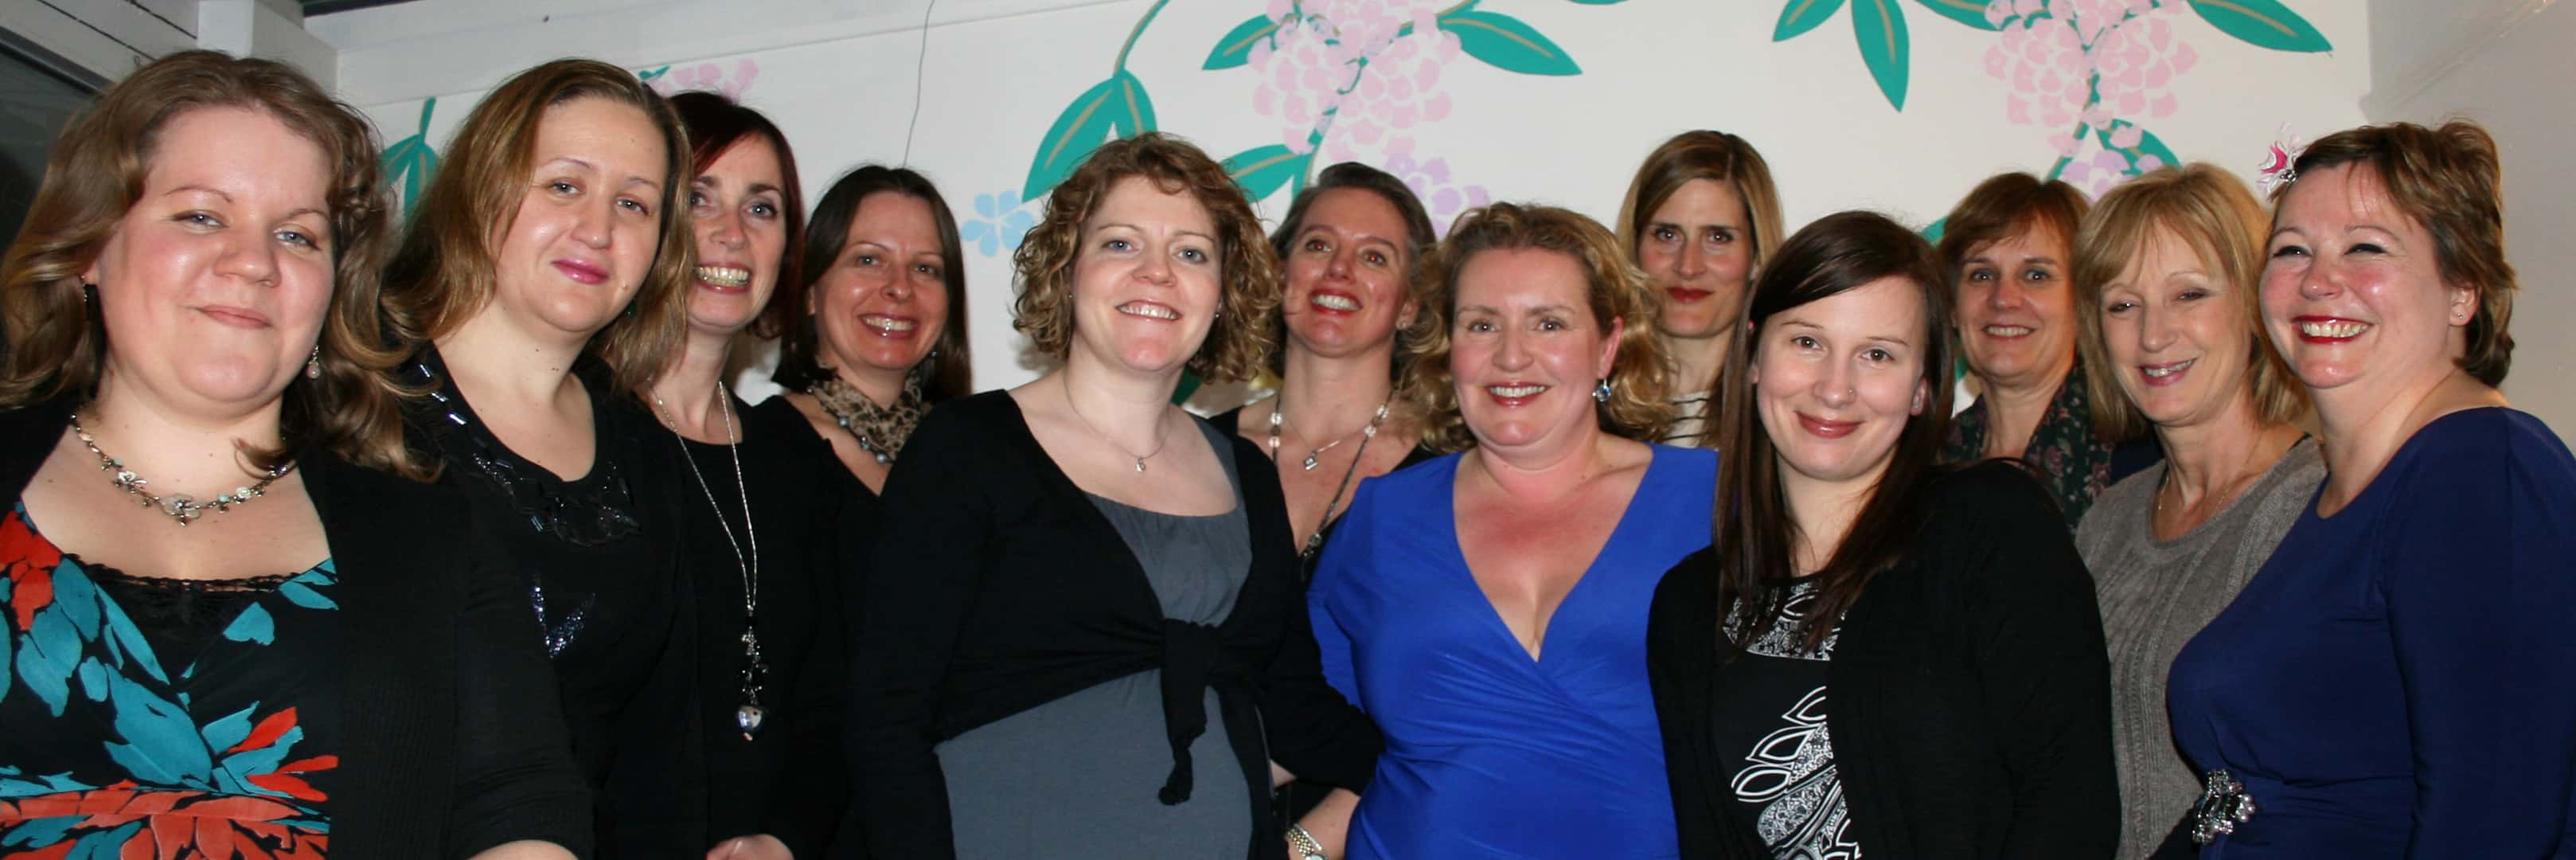 Amersham Ladies Circle 2012